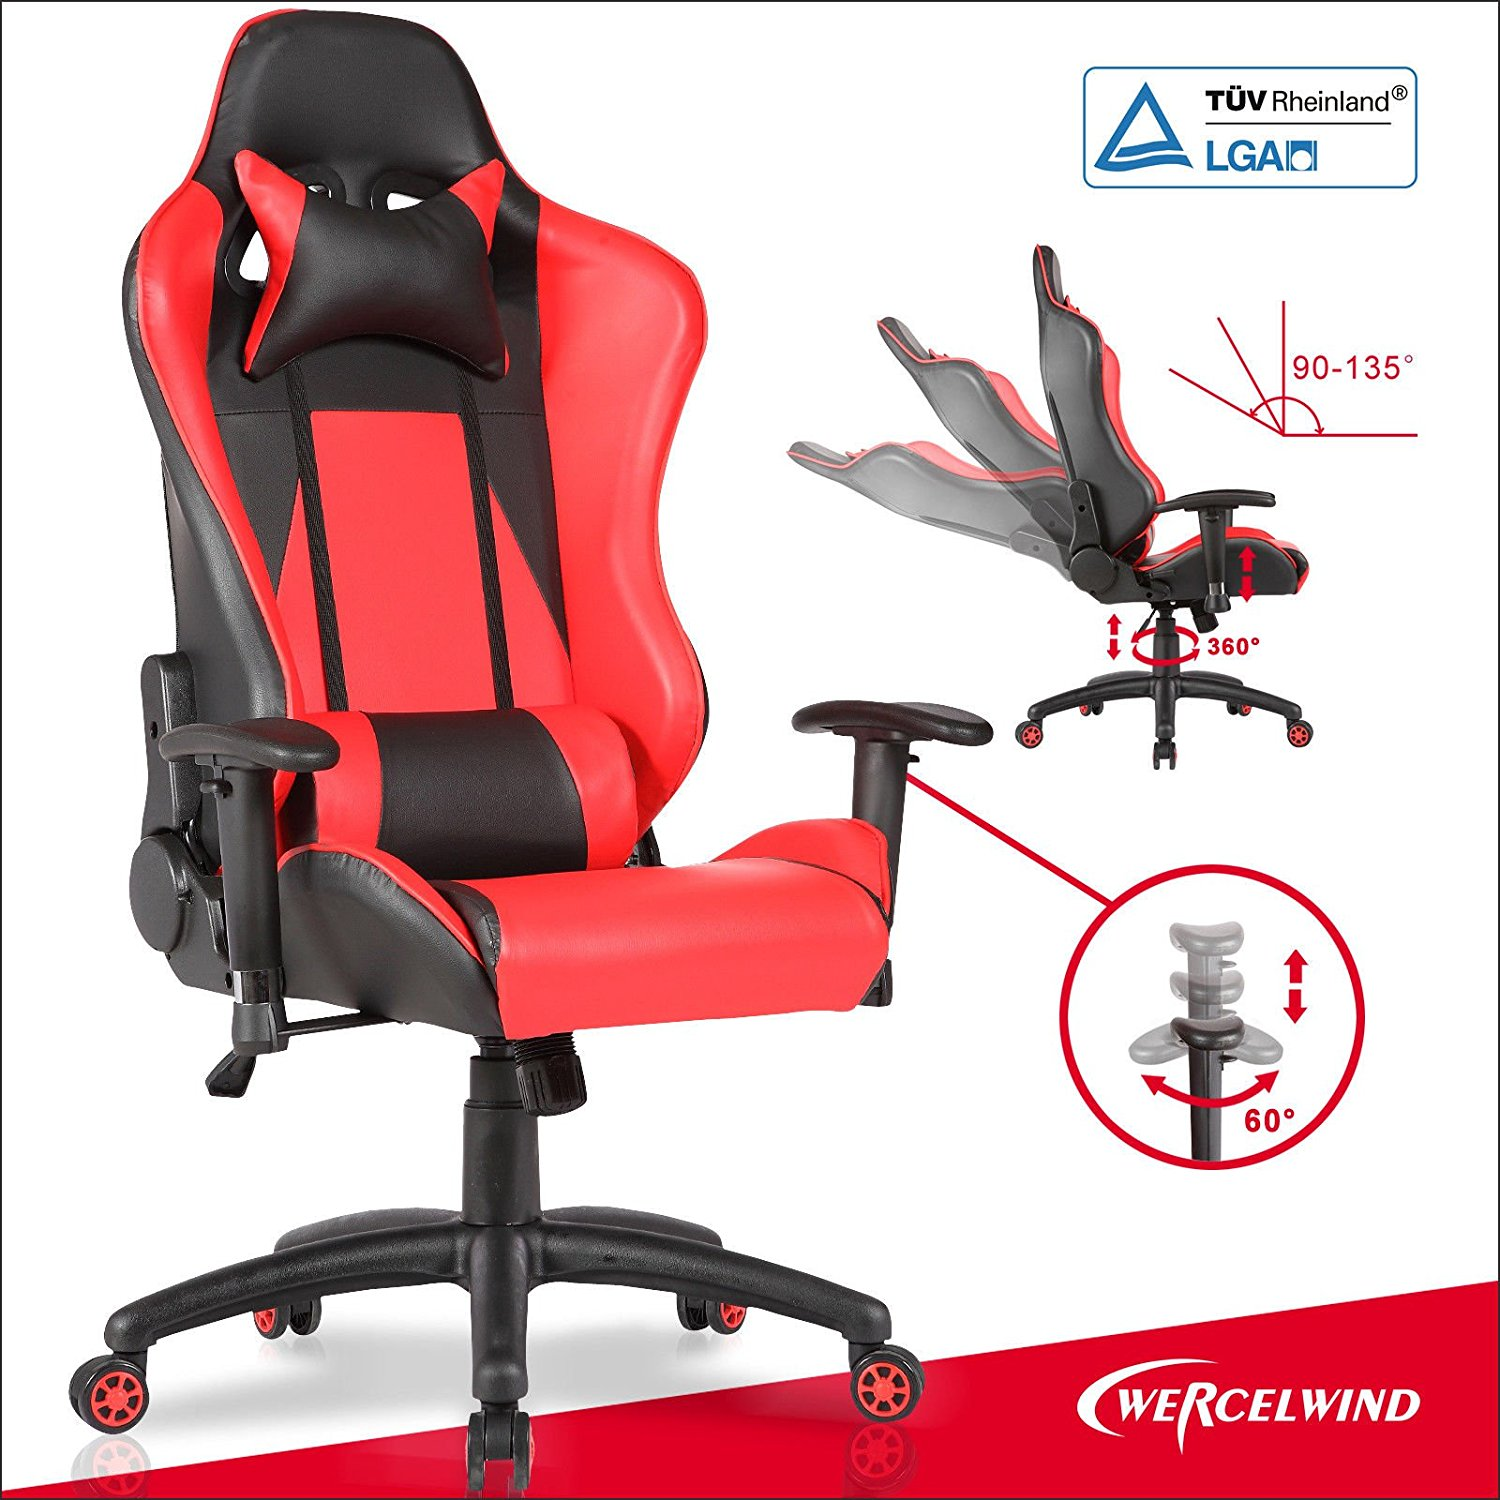 Red High Back Racing Car Gaming Office Chair Computer Chair Executive Rocker.gaming chairadjustable armrest .gaming chairhigh weight capacity.gaming chairon wheels.gaming chairhigh back